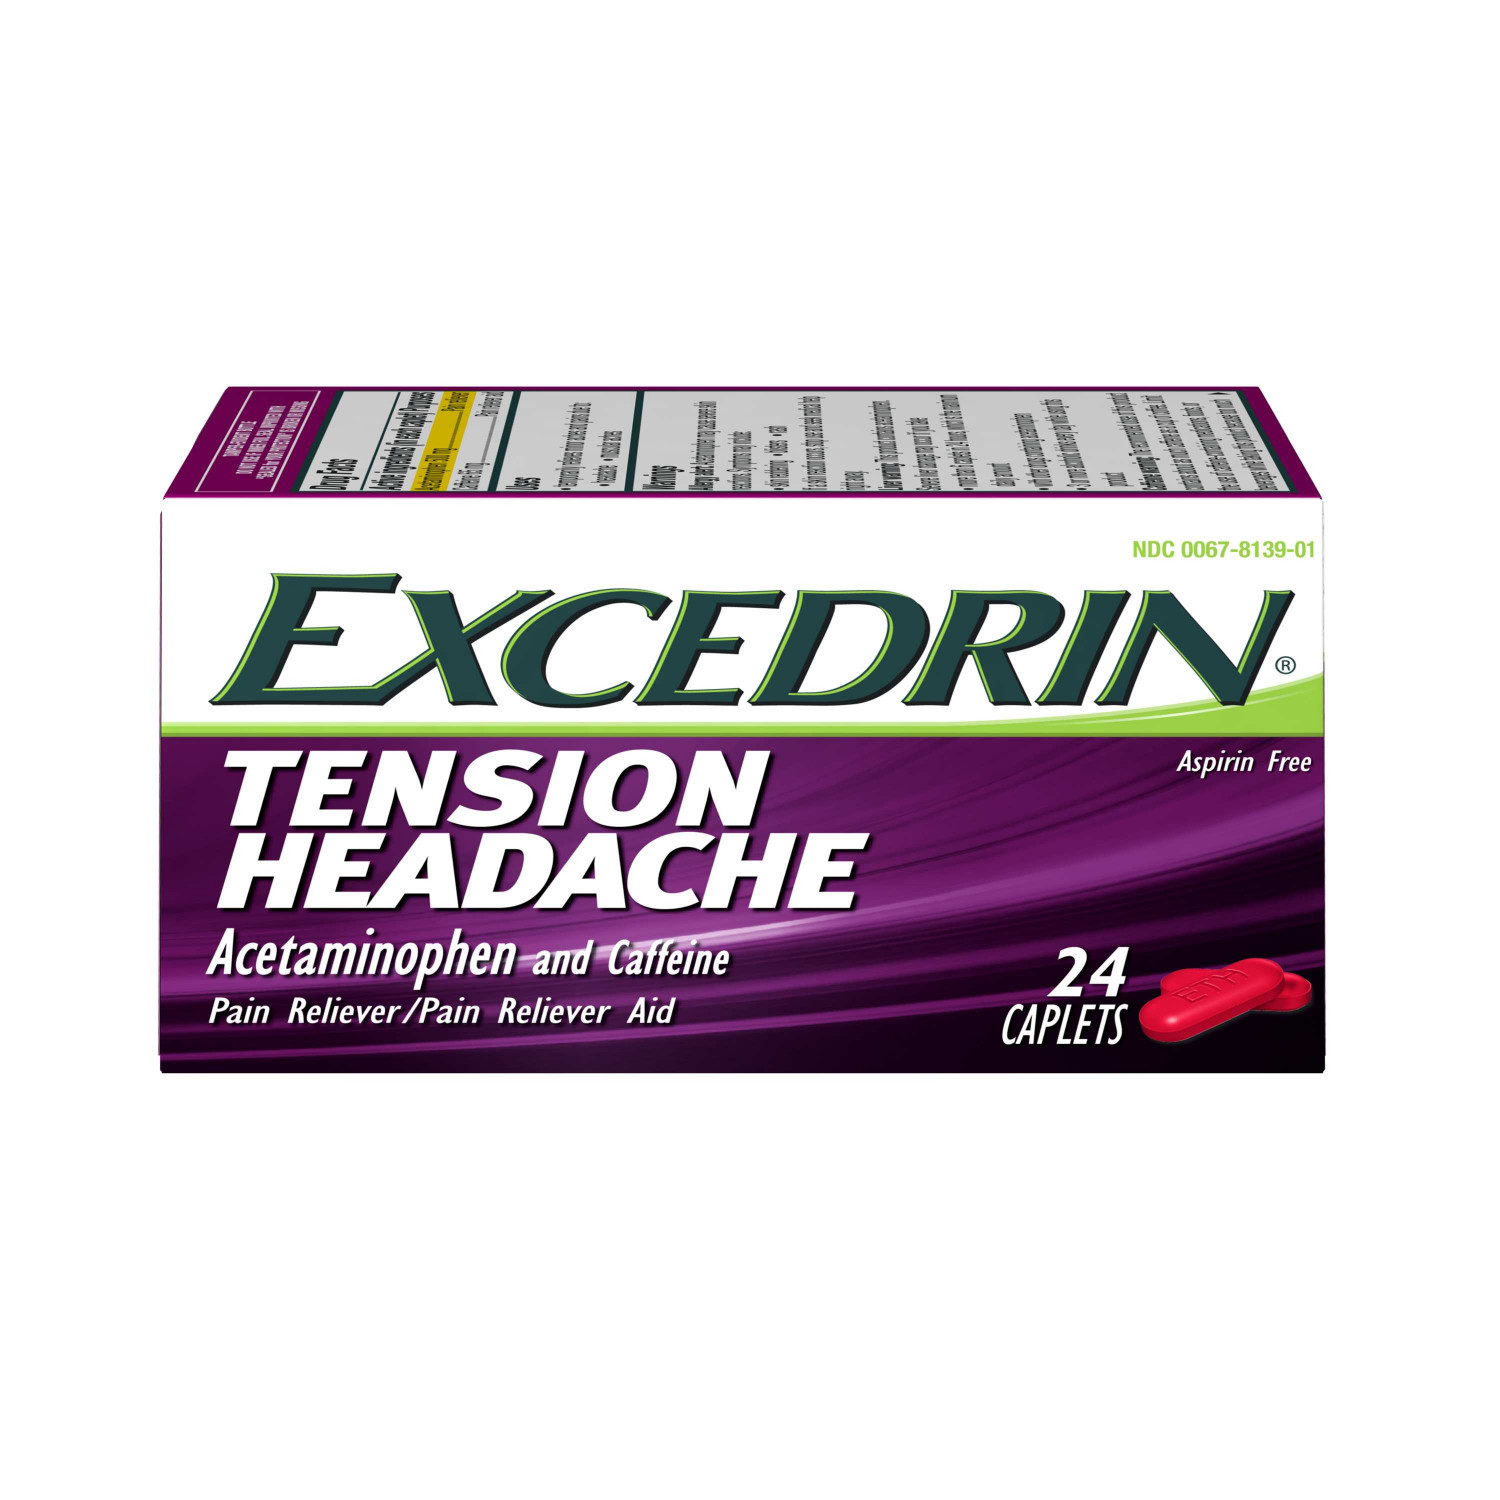 Excedrin Tension Headache Aspirin-Free Caplets for Head, Neck, and Shoulder Pain Relief, 24 count